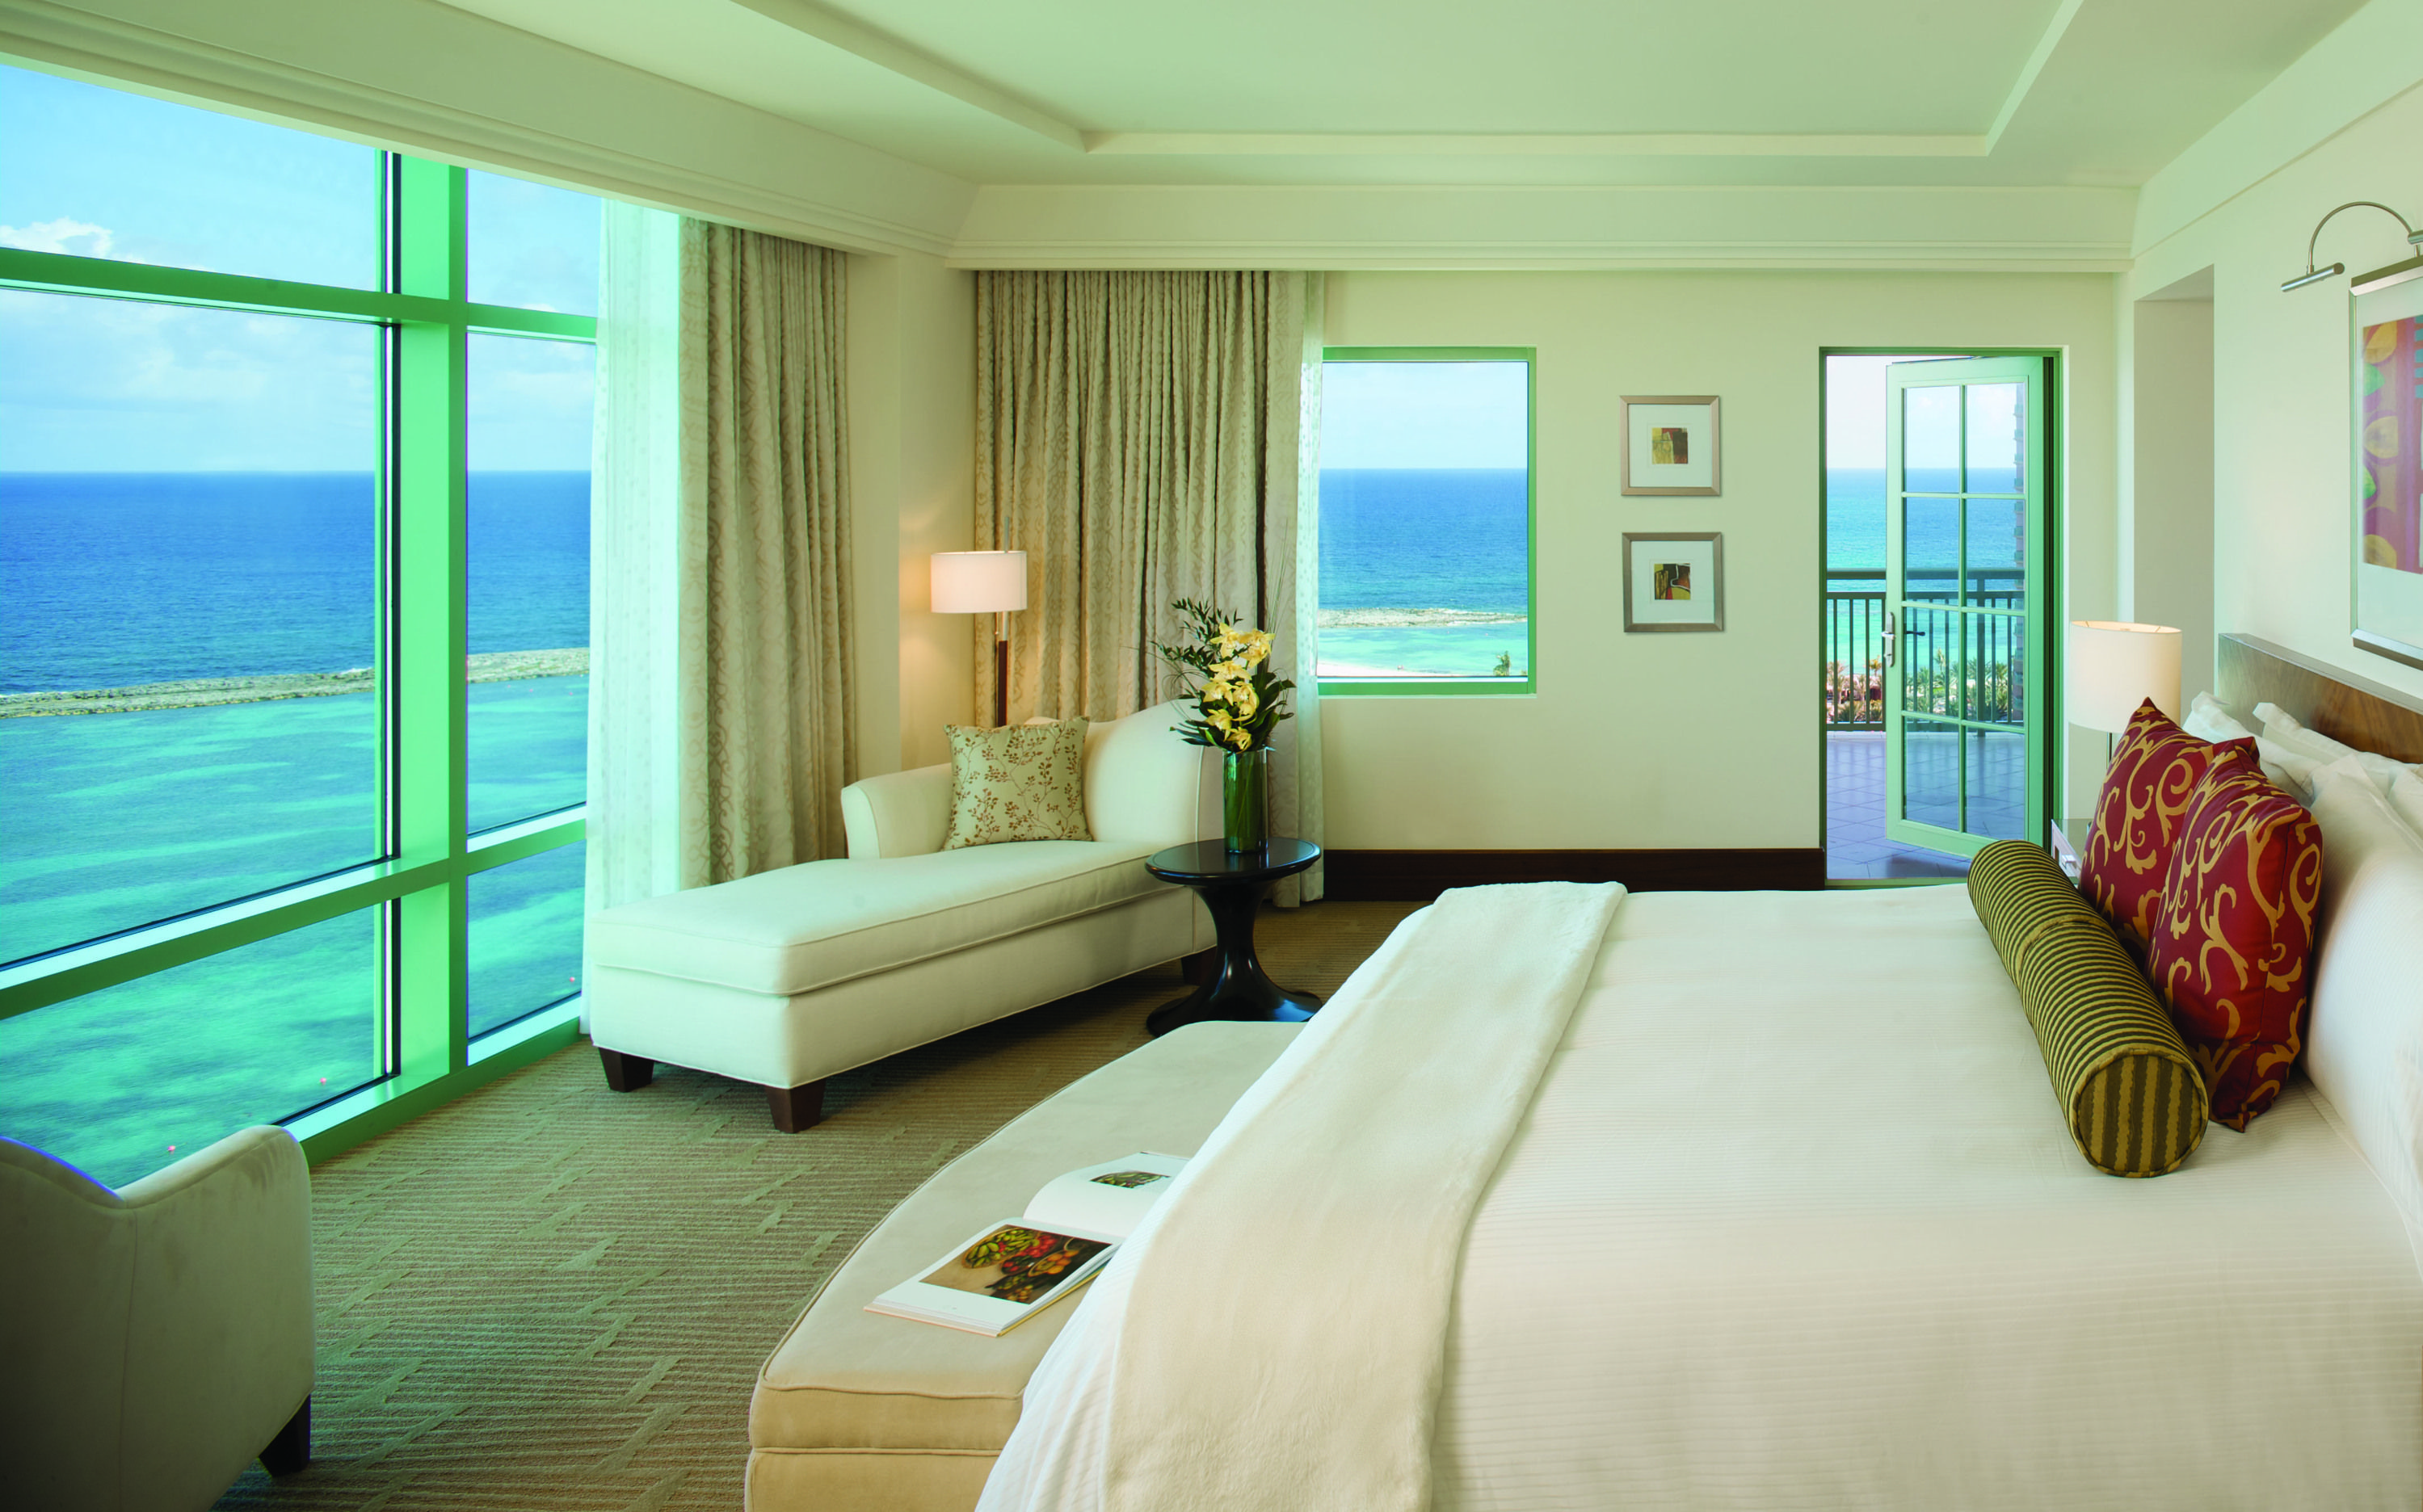 The Topaz Suite bedroom at The Reef. What an amazing view